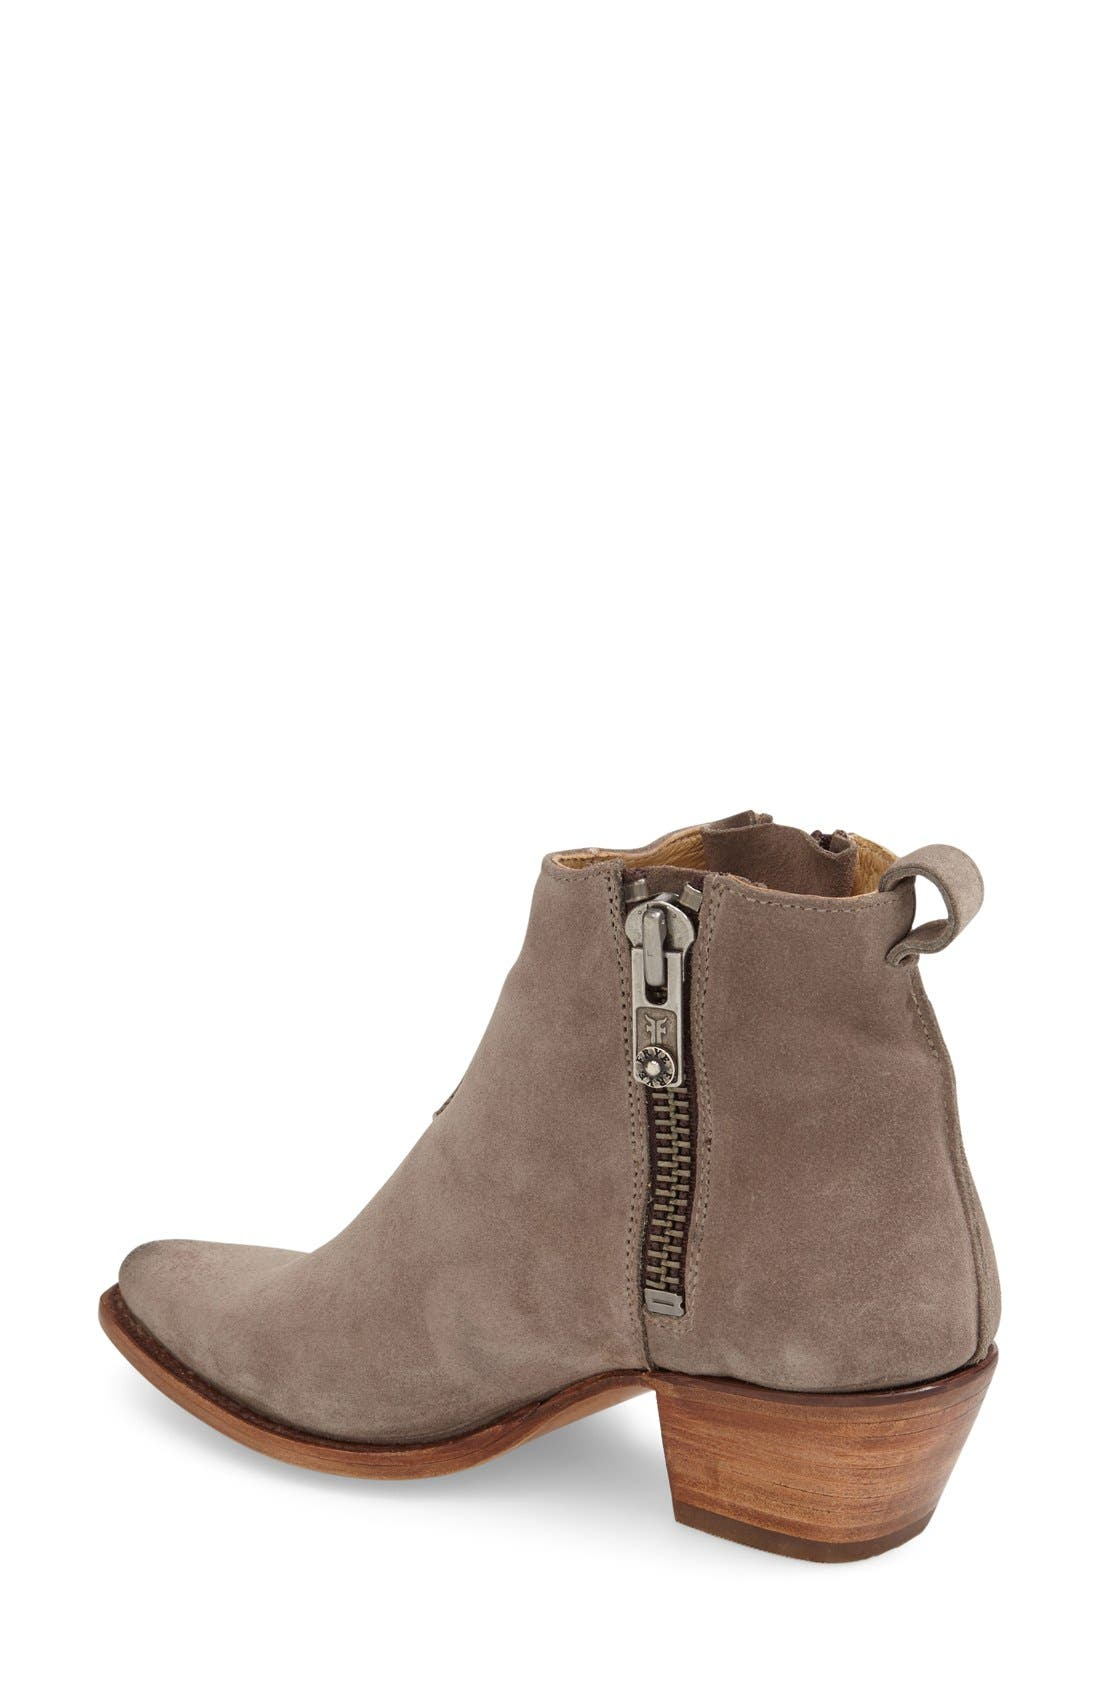 'Sacha' Washed Leather Ankle Boot,                             Alternate thumbnail 2, color,                             Dark Grey Suede